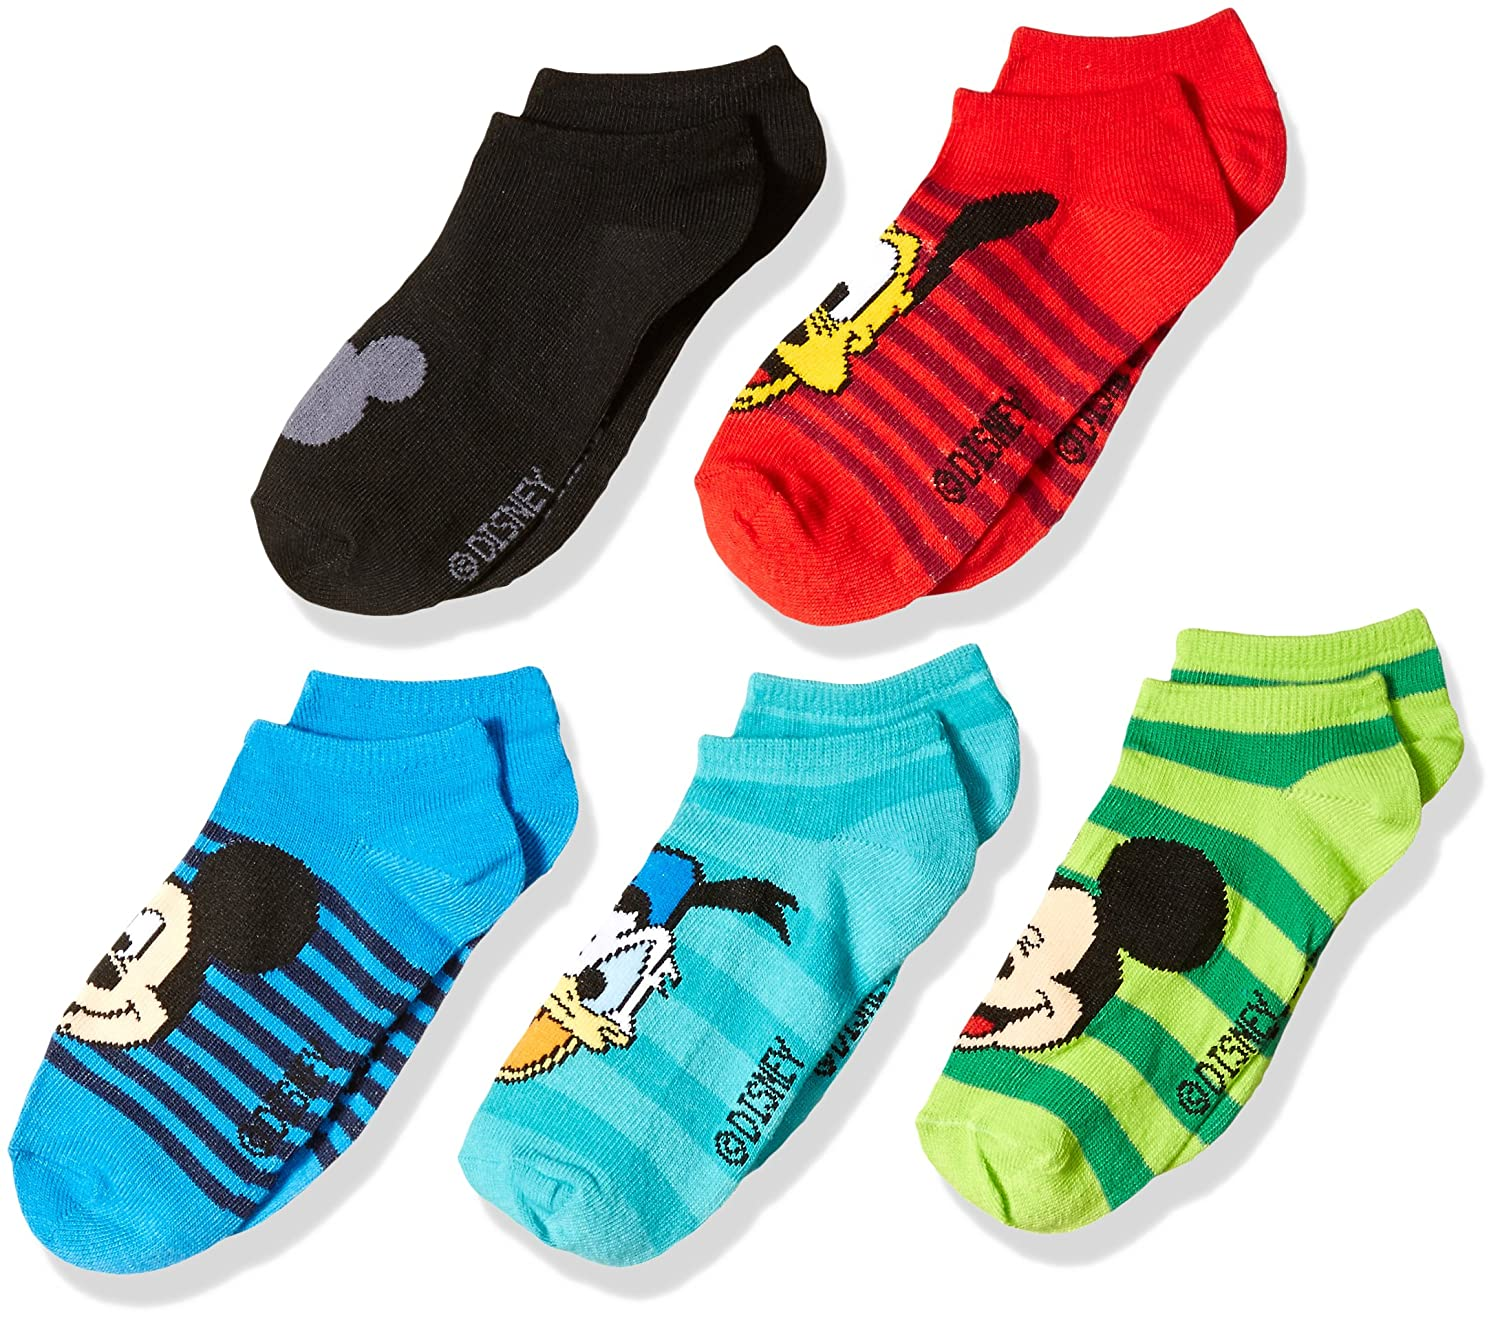 Disney Boys' Mickey Mouse 5 Pack No Show Socks Assorted Bright 6-8.5 41590138G20AZ